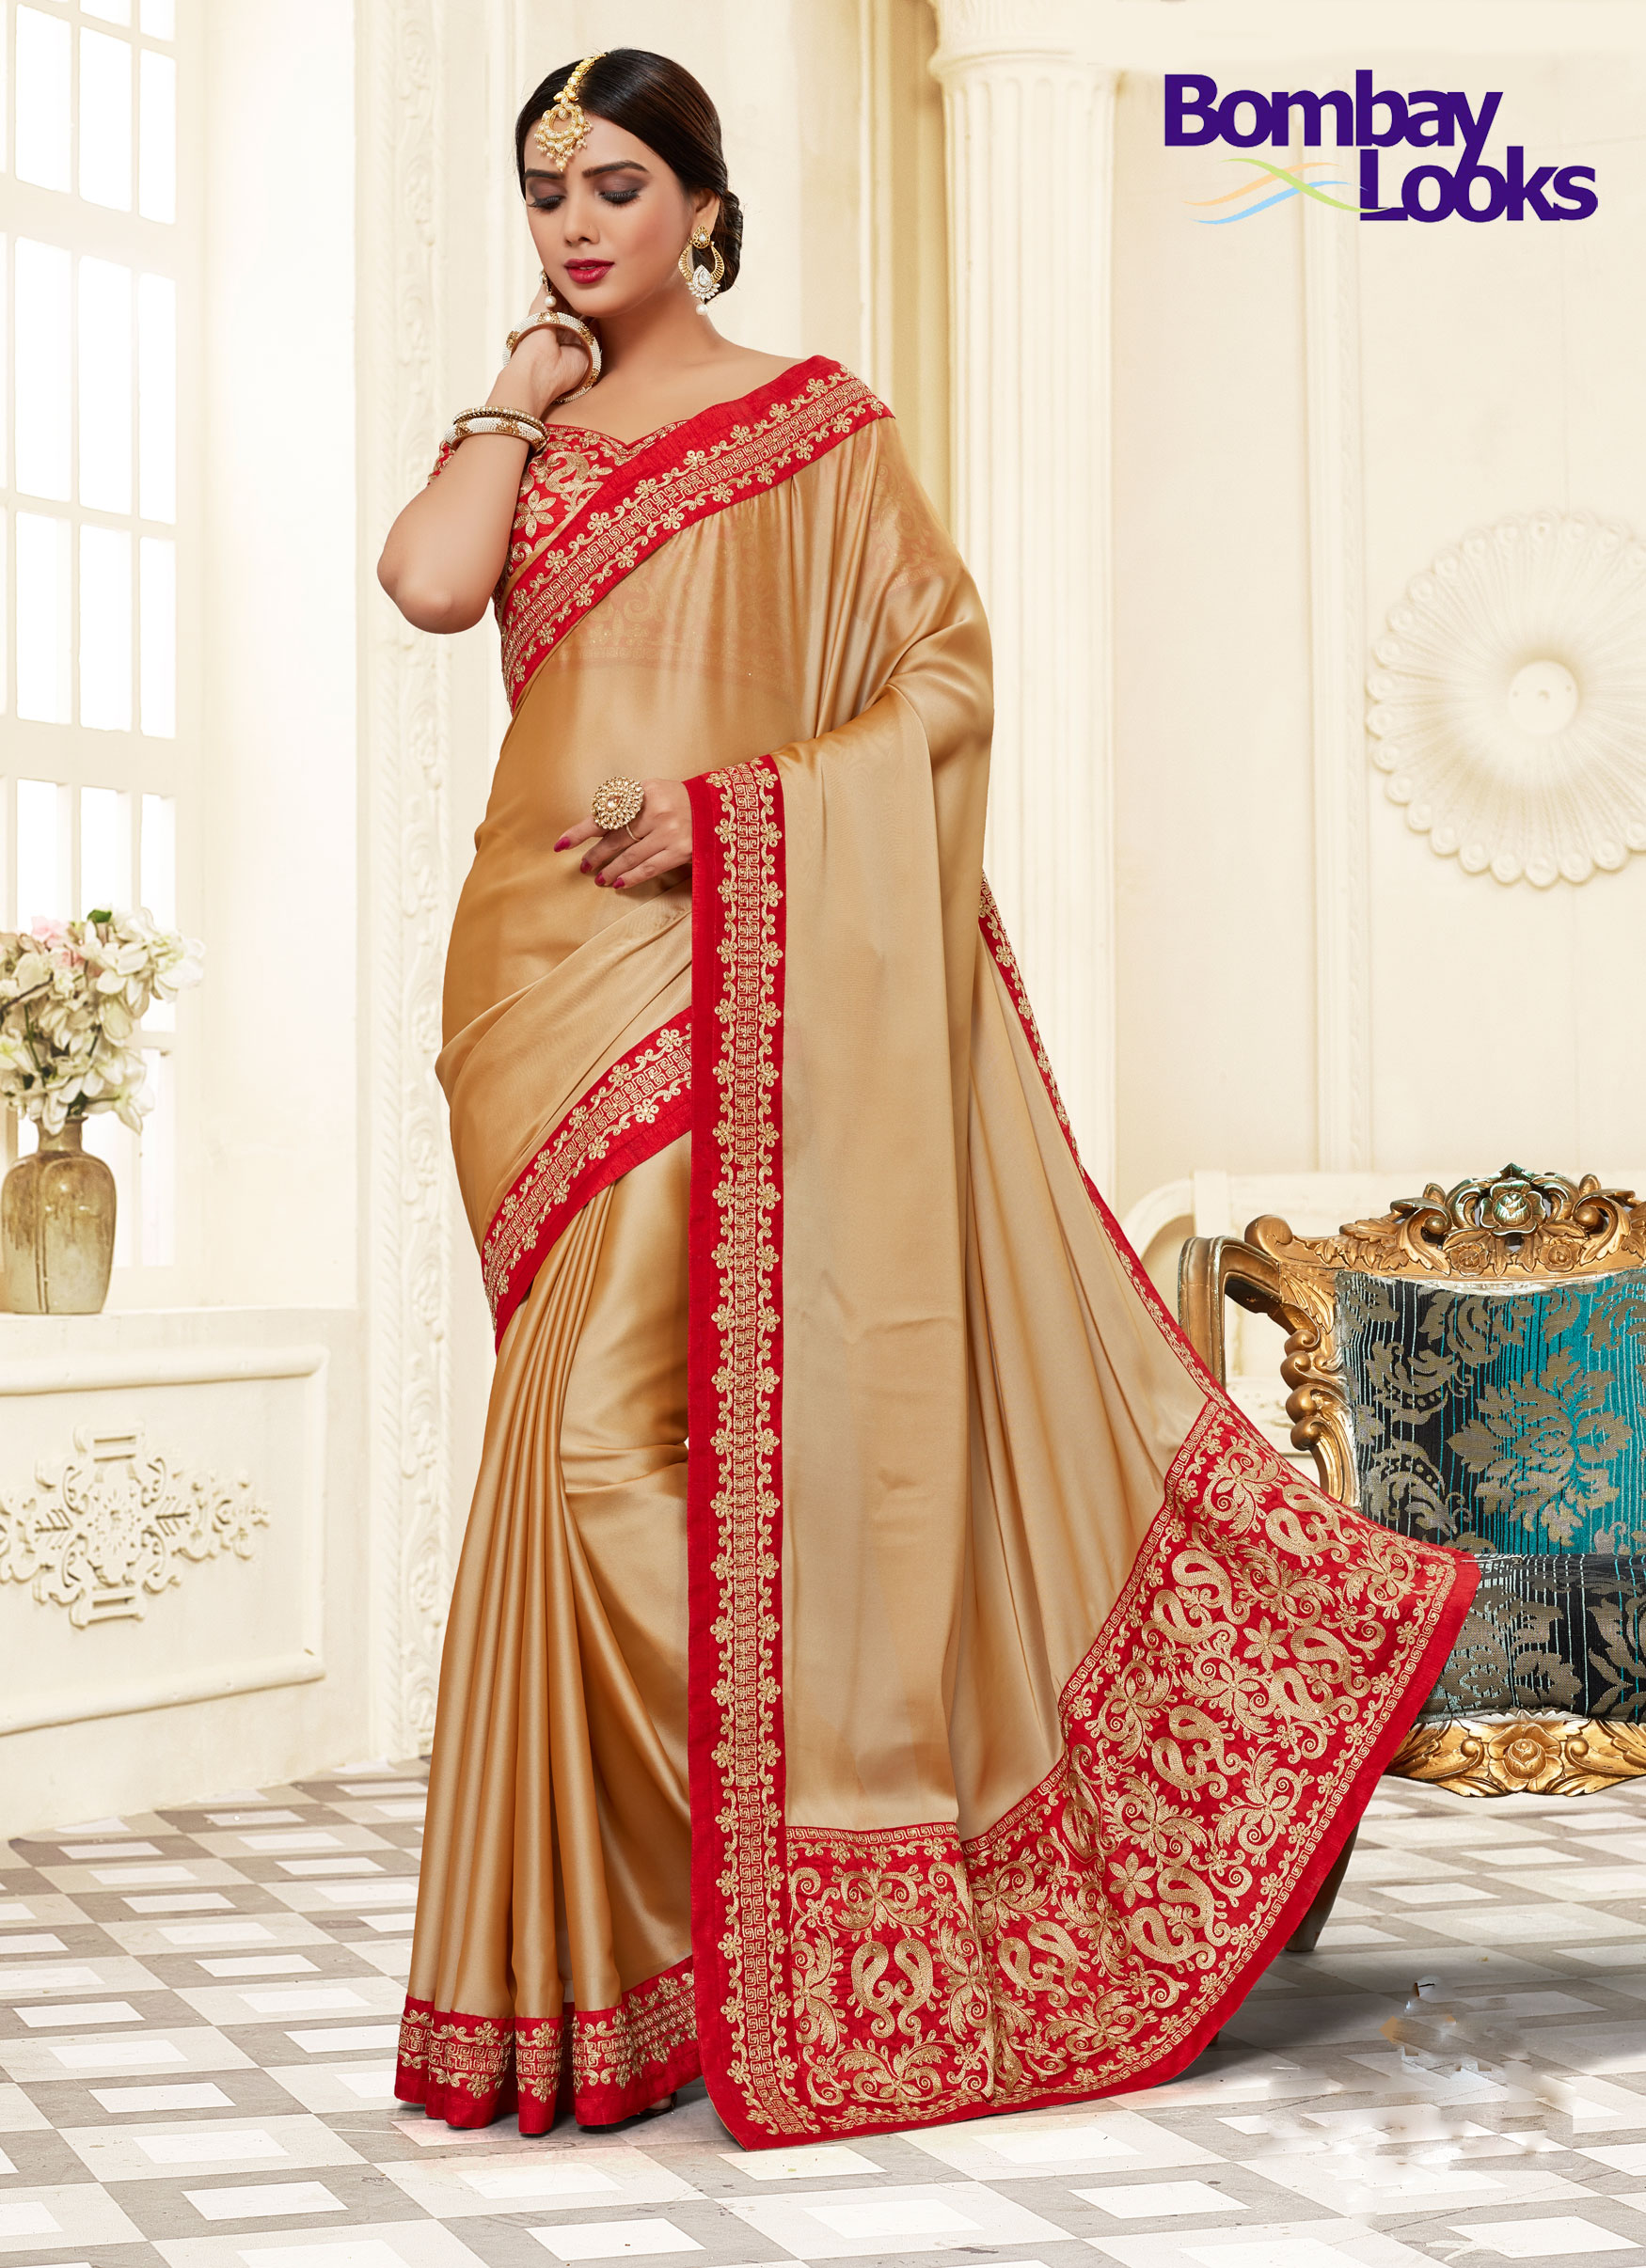 Elegant gold and red saree with stylish blouse